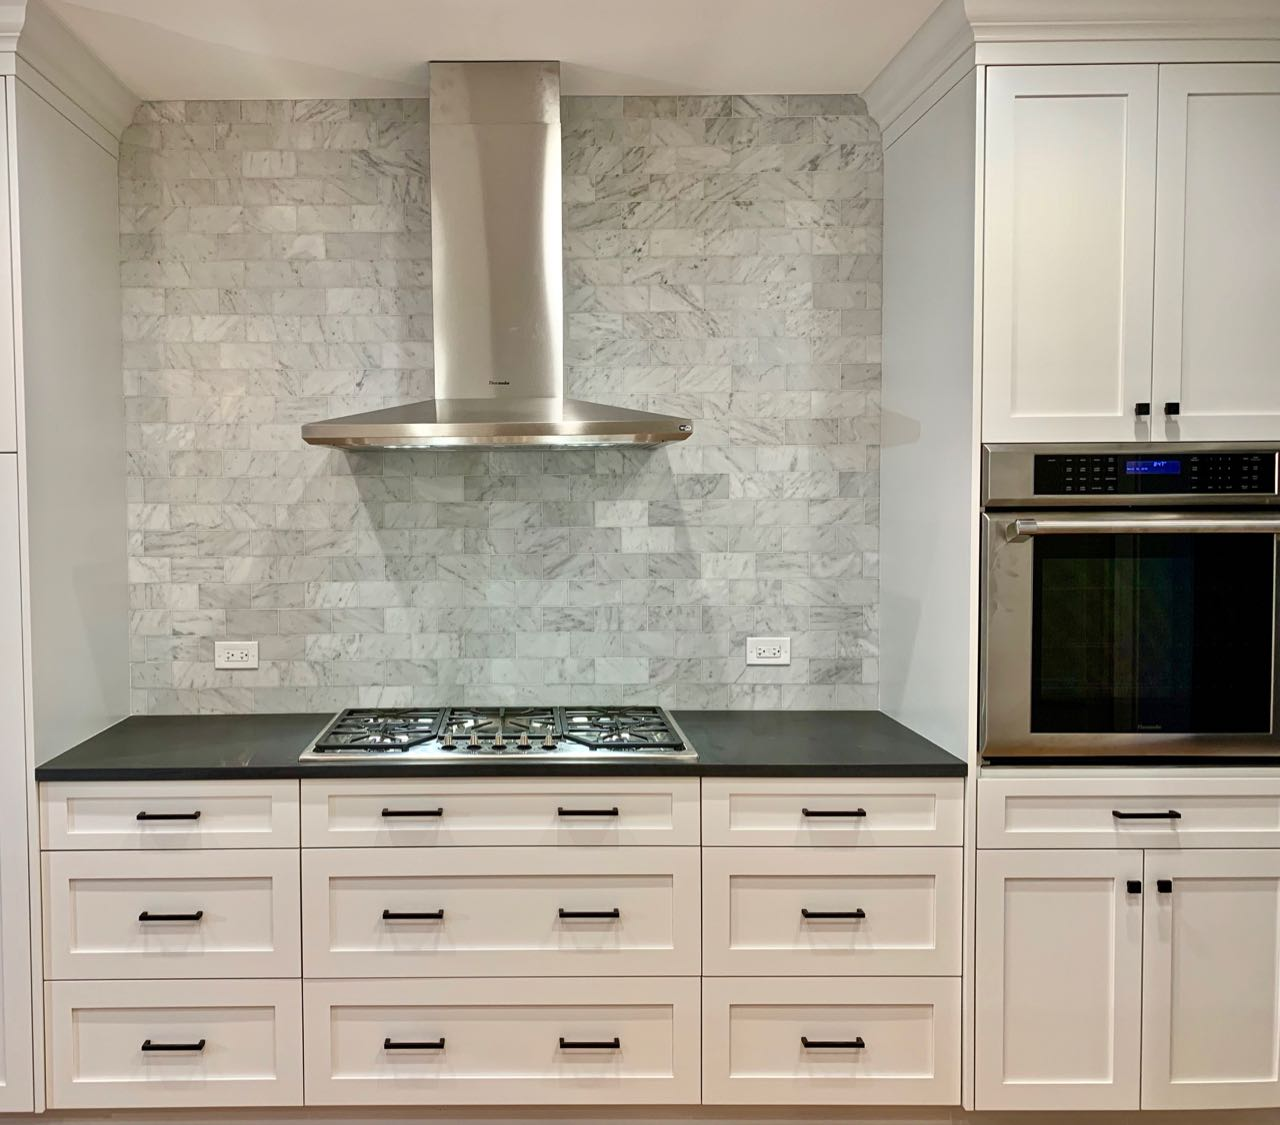 A view of the cooktop wall. Drawers are preferable to doors in this location for convenient access to pots, pans, and cooking utensils. Although there was enough space for one more wall cabinet on either side of the hood vent, it would have added visual clutter without adding much usable storage.